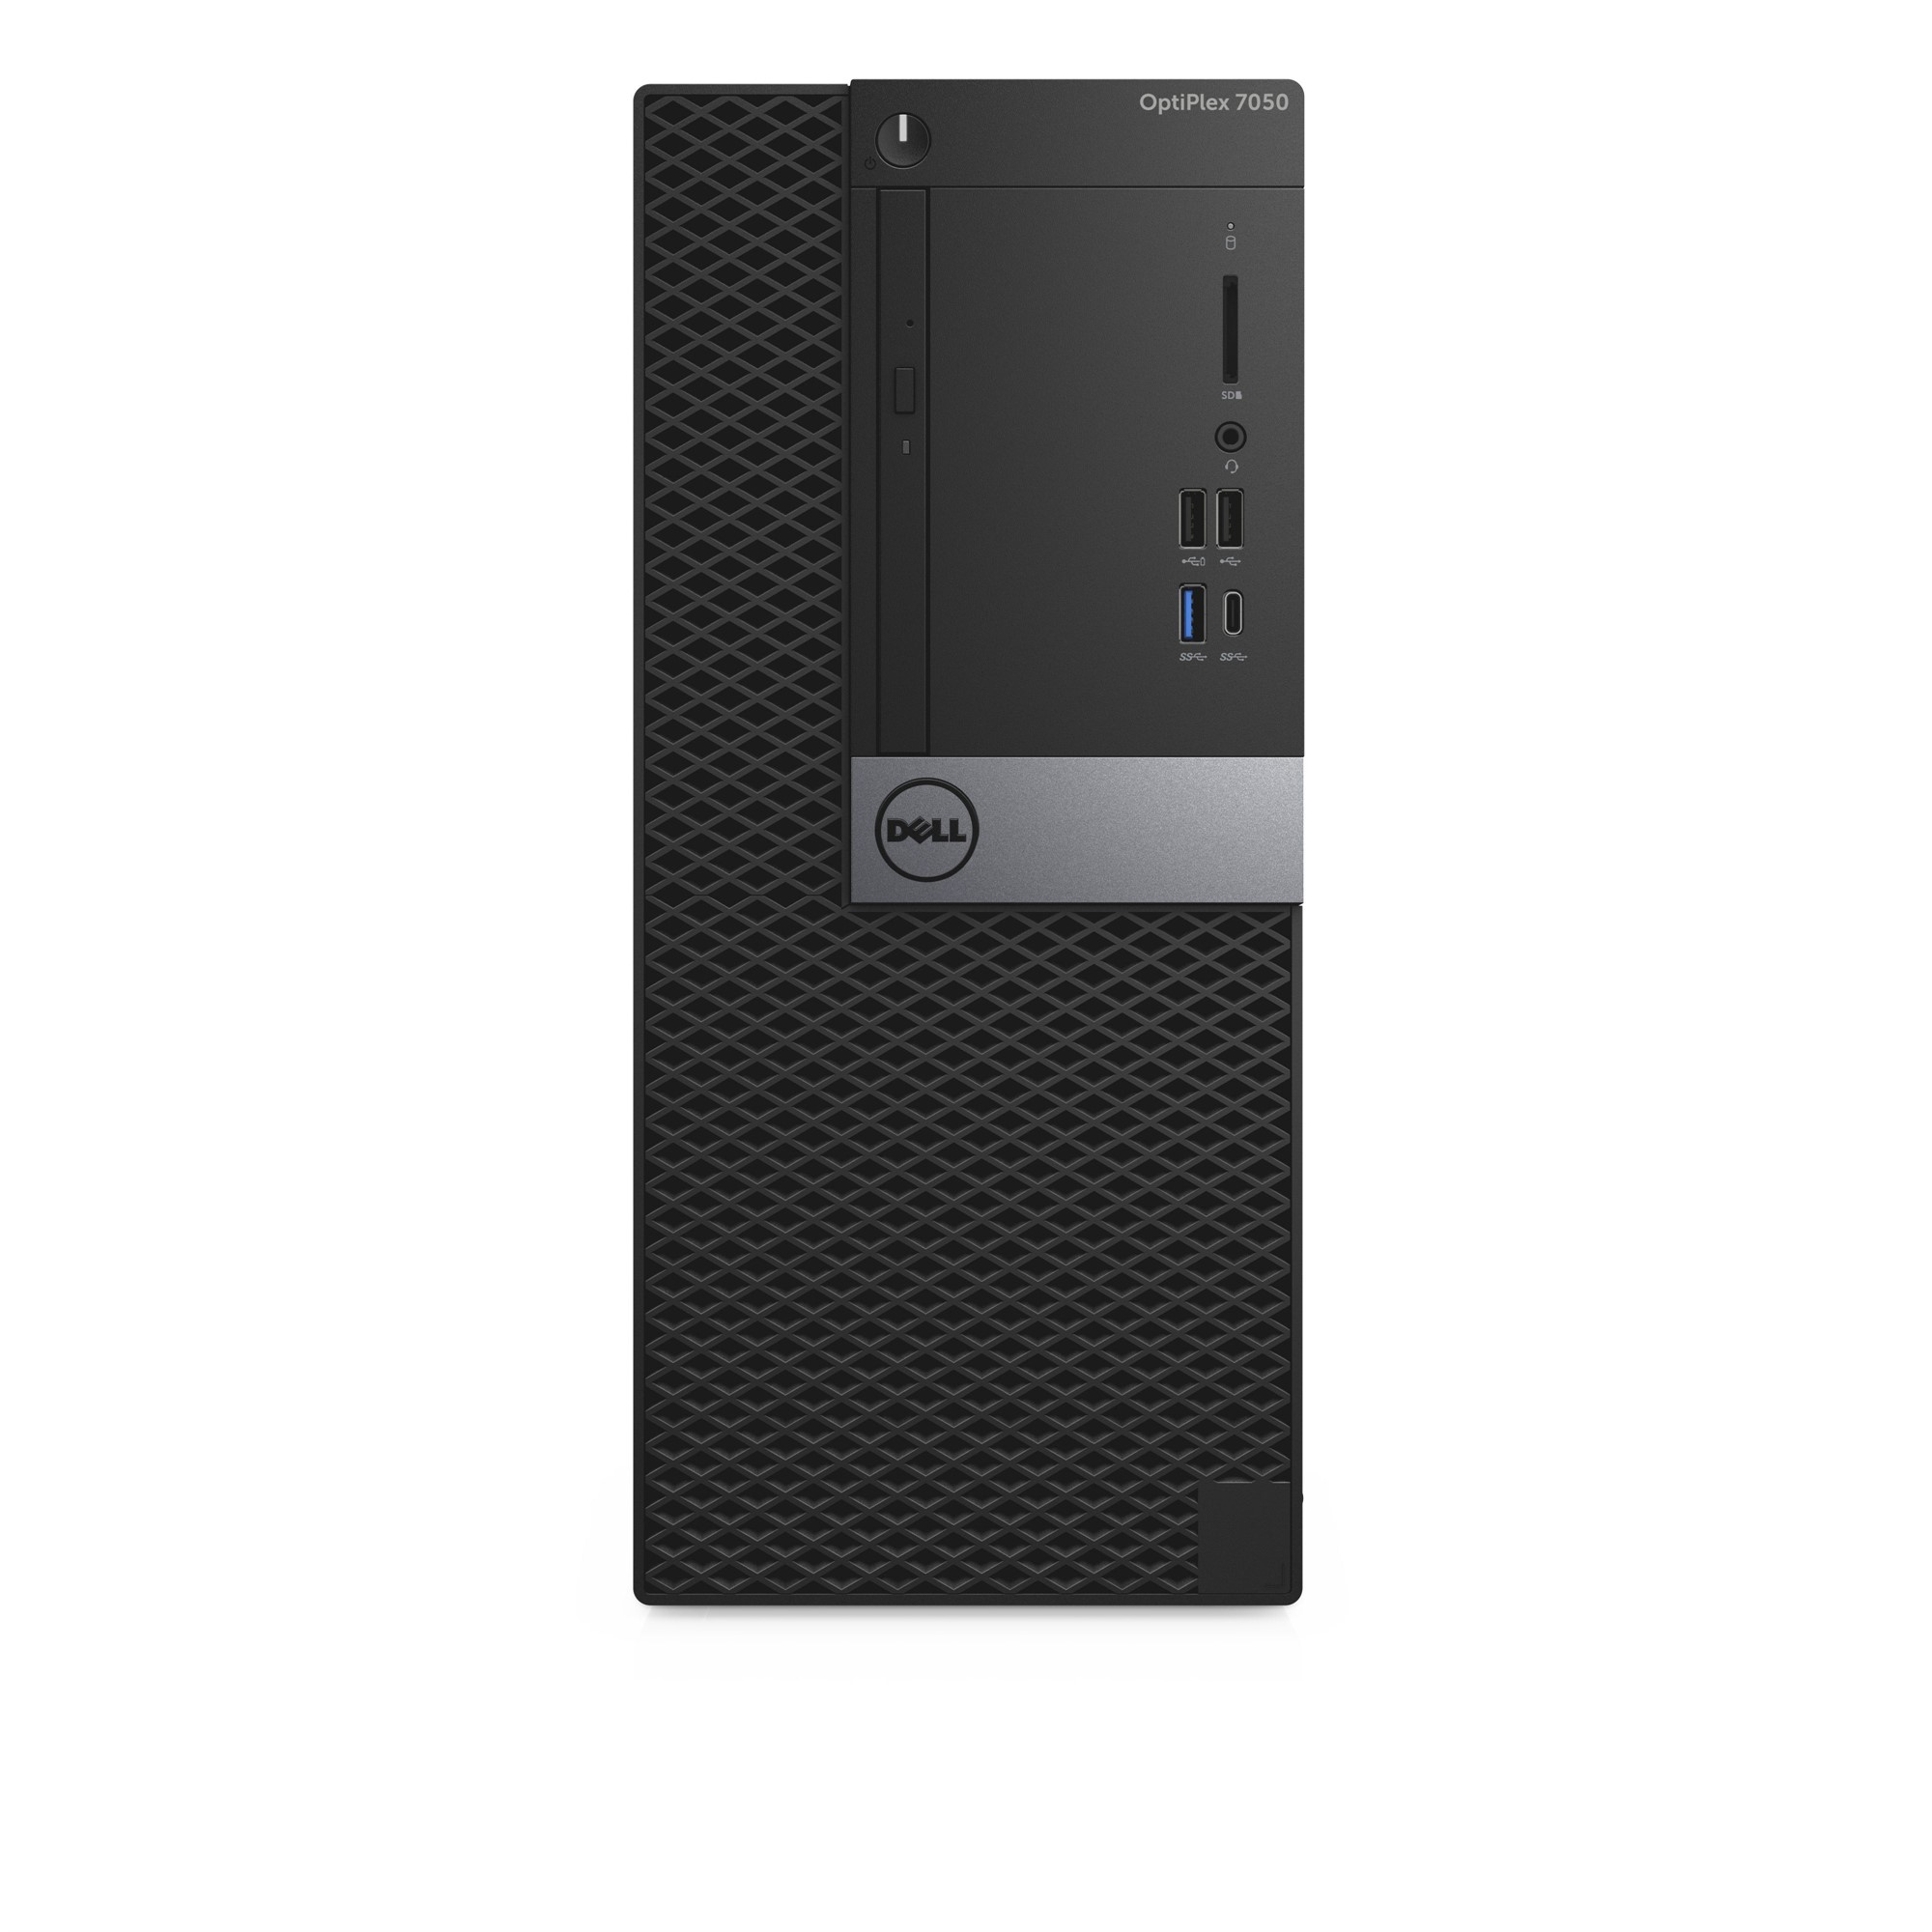 DELL OPTIPLEX 7050 3.4GHZ I5-7500 TOWER BLACK PC